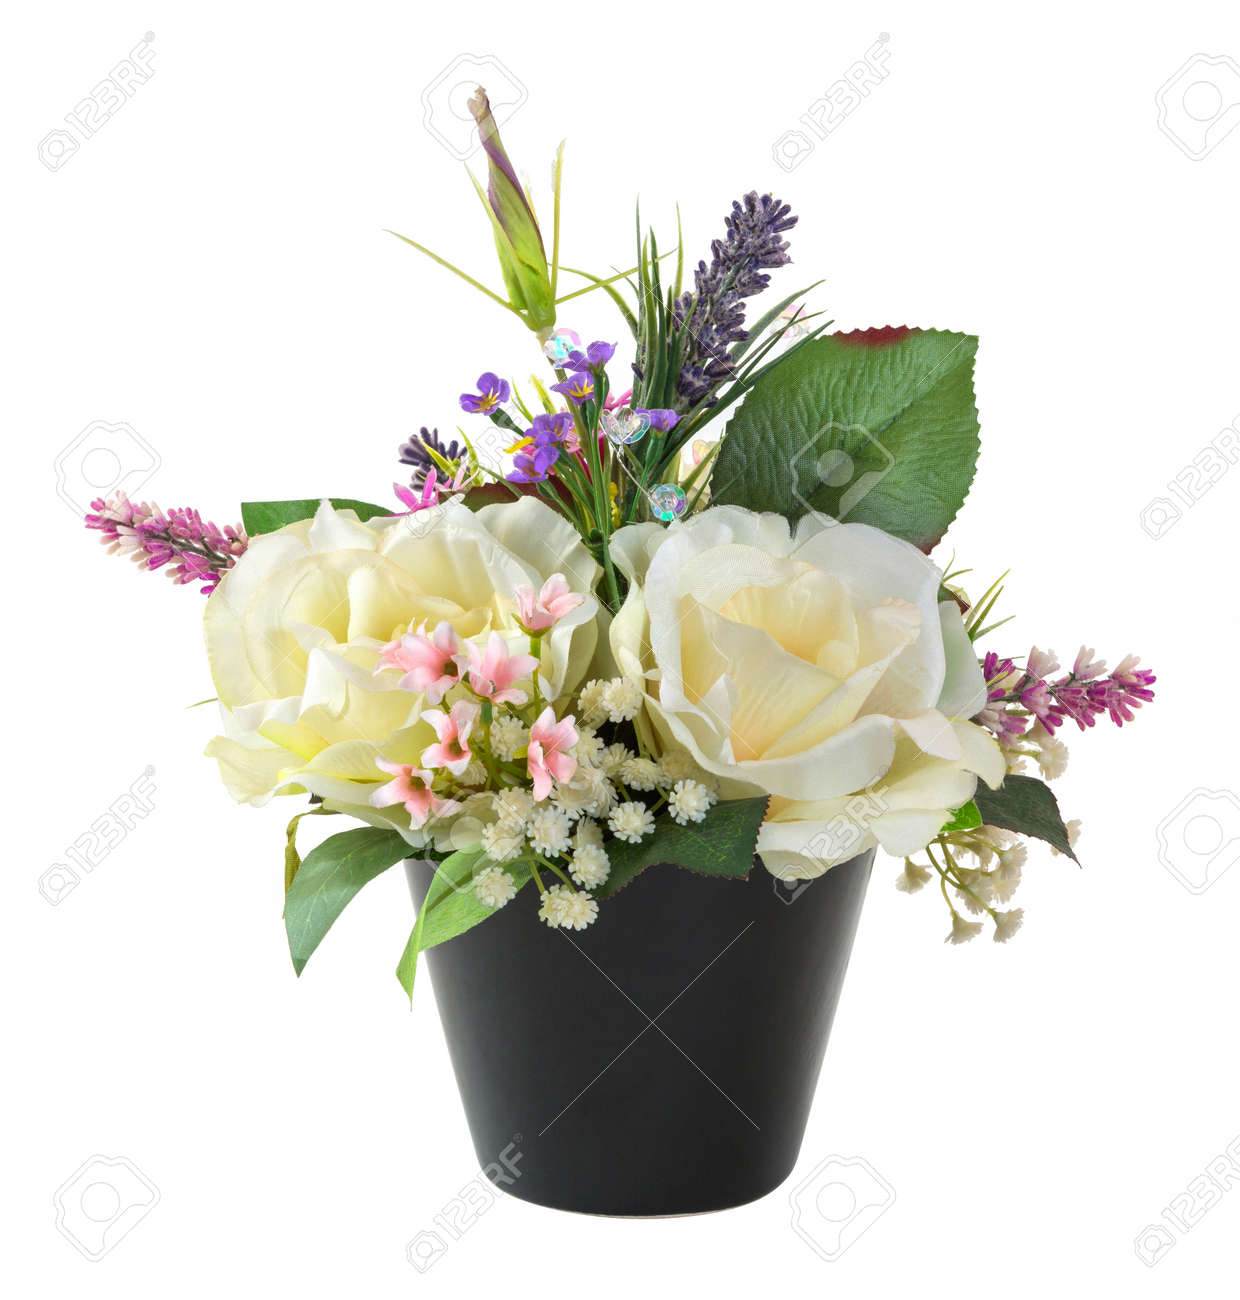 Bouquet of rose in black pot isolated on white artificial flower bouquet of rose in black pot isolated on white artificial flower stock photo 20630577 mightylinksfo